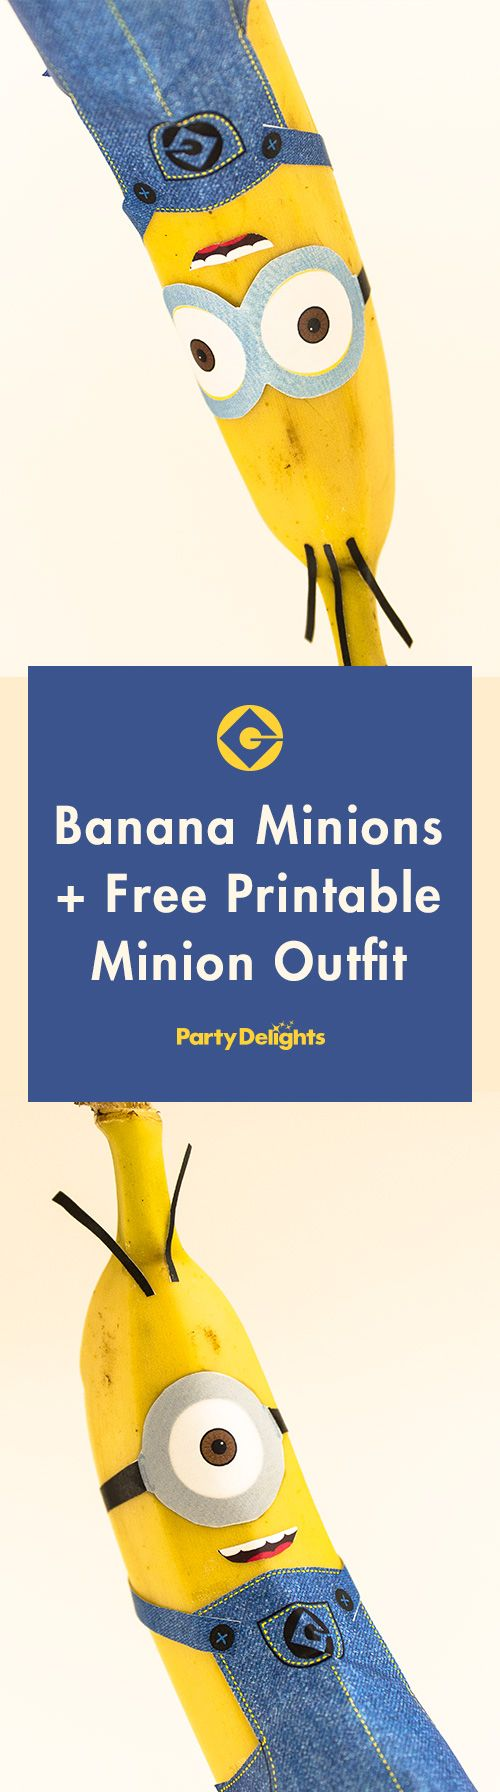 Download our free printable minion outfits to make these adorable banana minions! Perfect for a minion birthday party or a lunch box surprise! Visit blog.partydelights.co.uk for even more fun party ideas for kids.